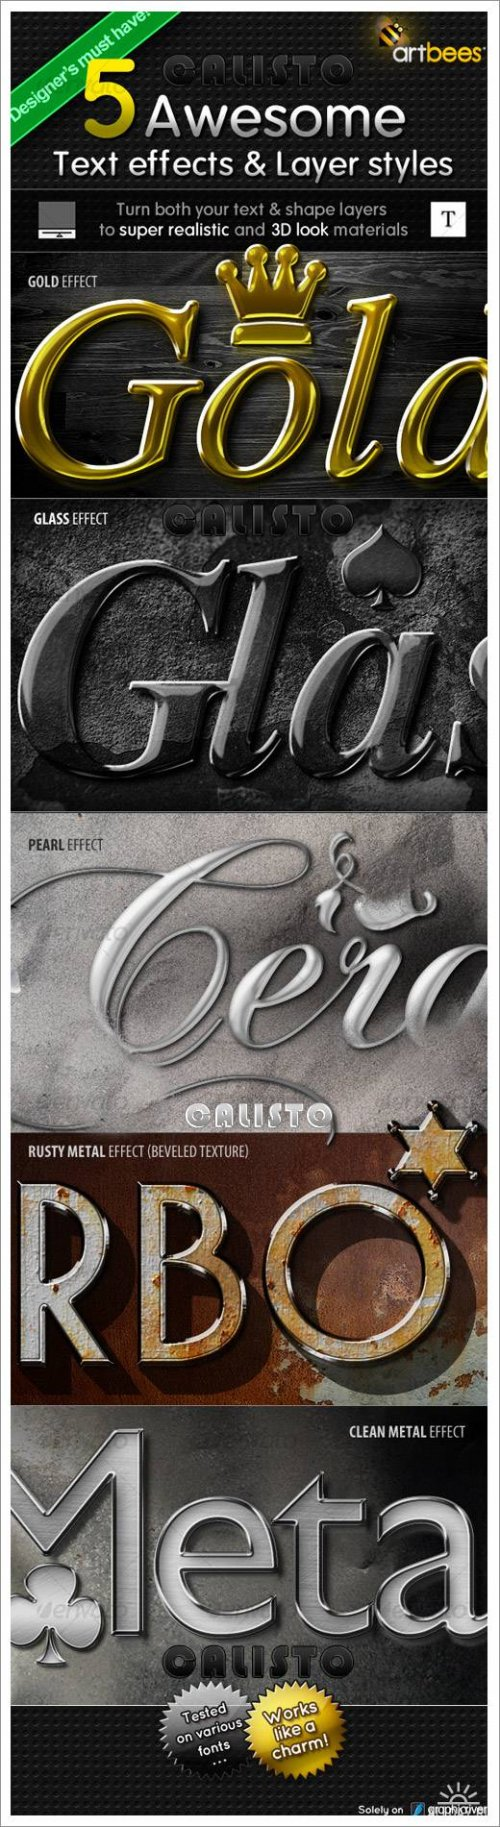 5 Awesome Text effects & Layer Styles - GraphicRiver